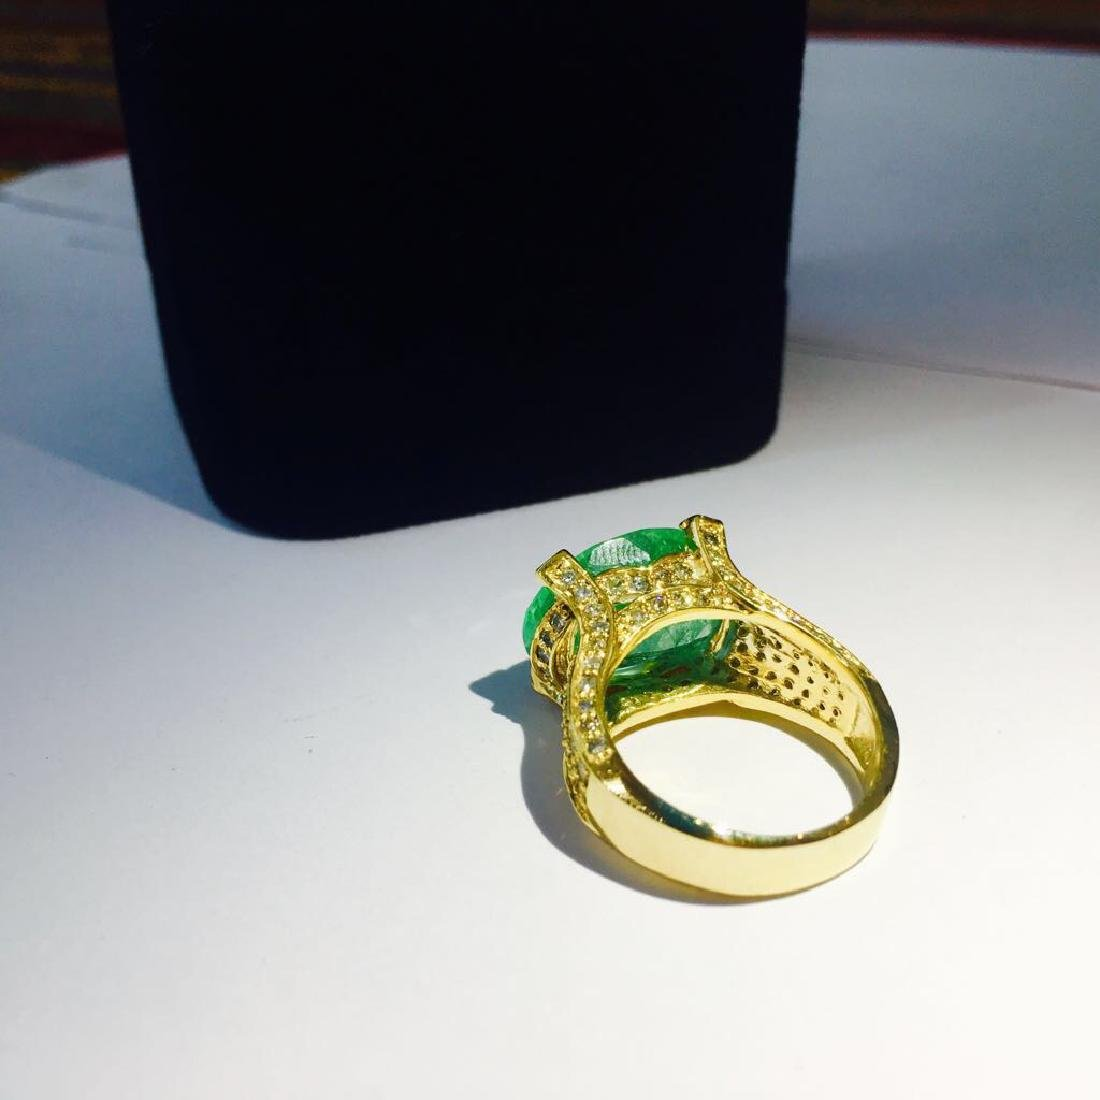 14K, 11.50 Carat Colombian Emerald and Diamond Ring - 4